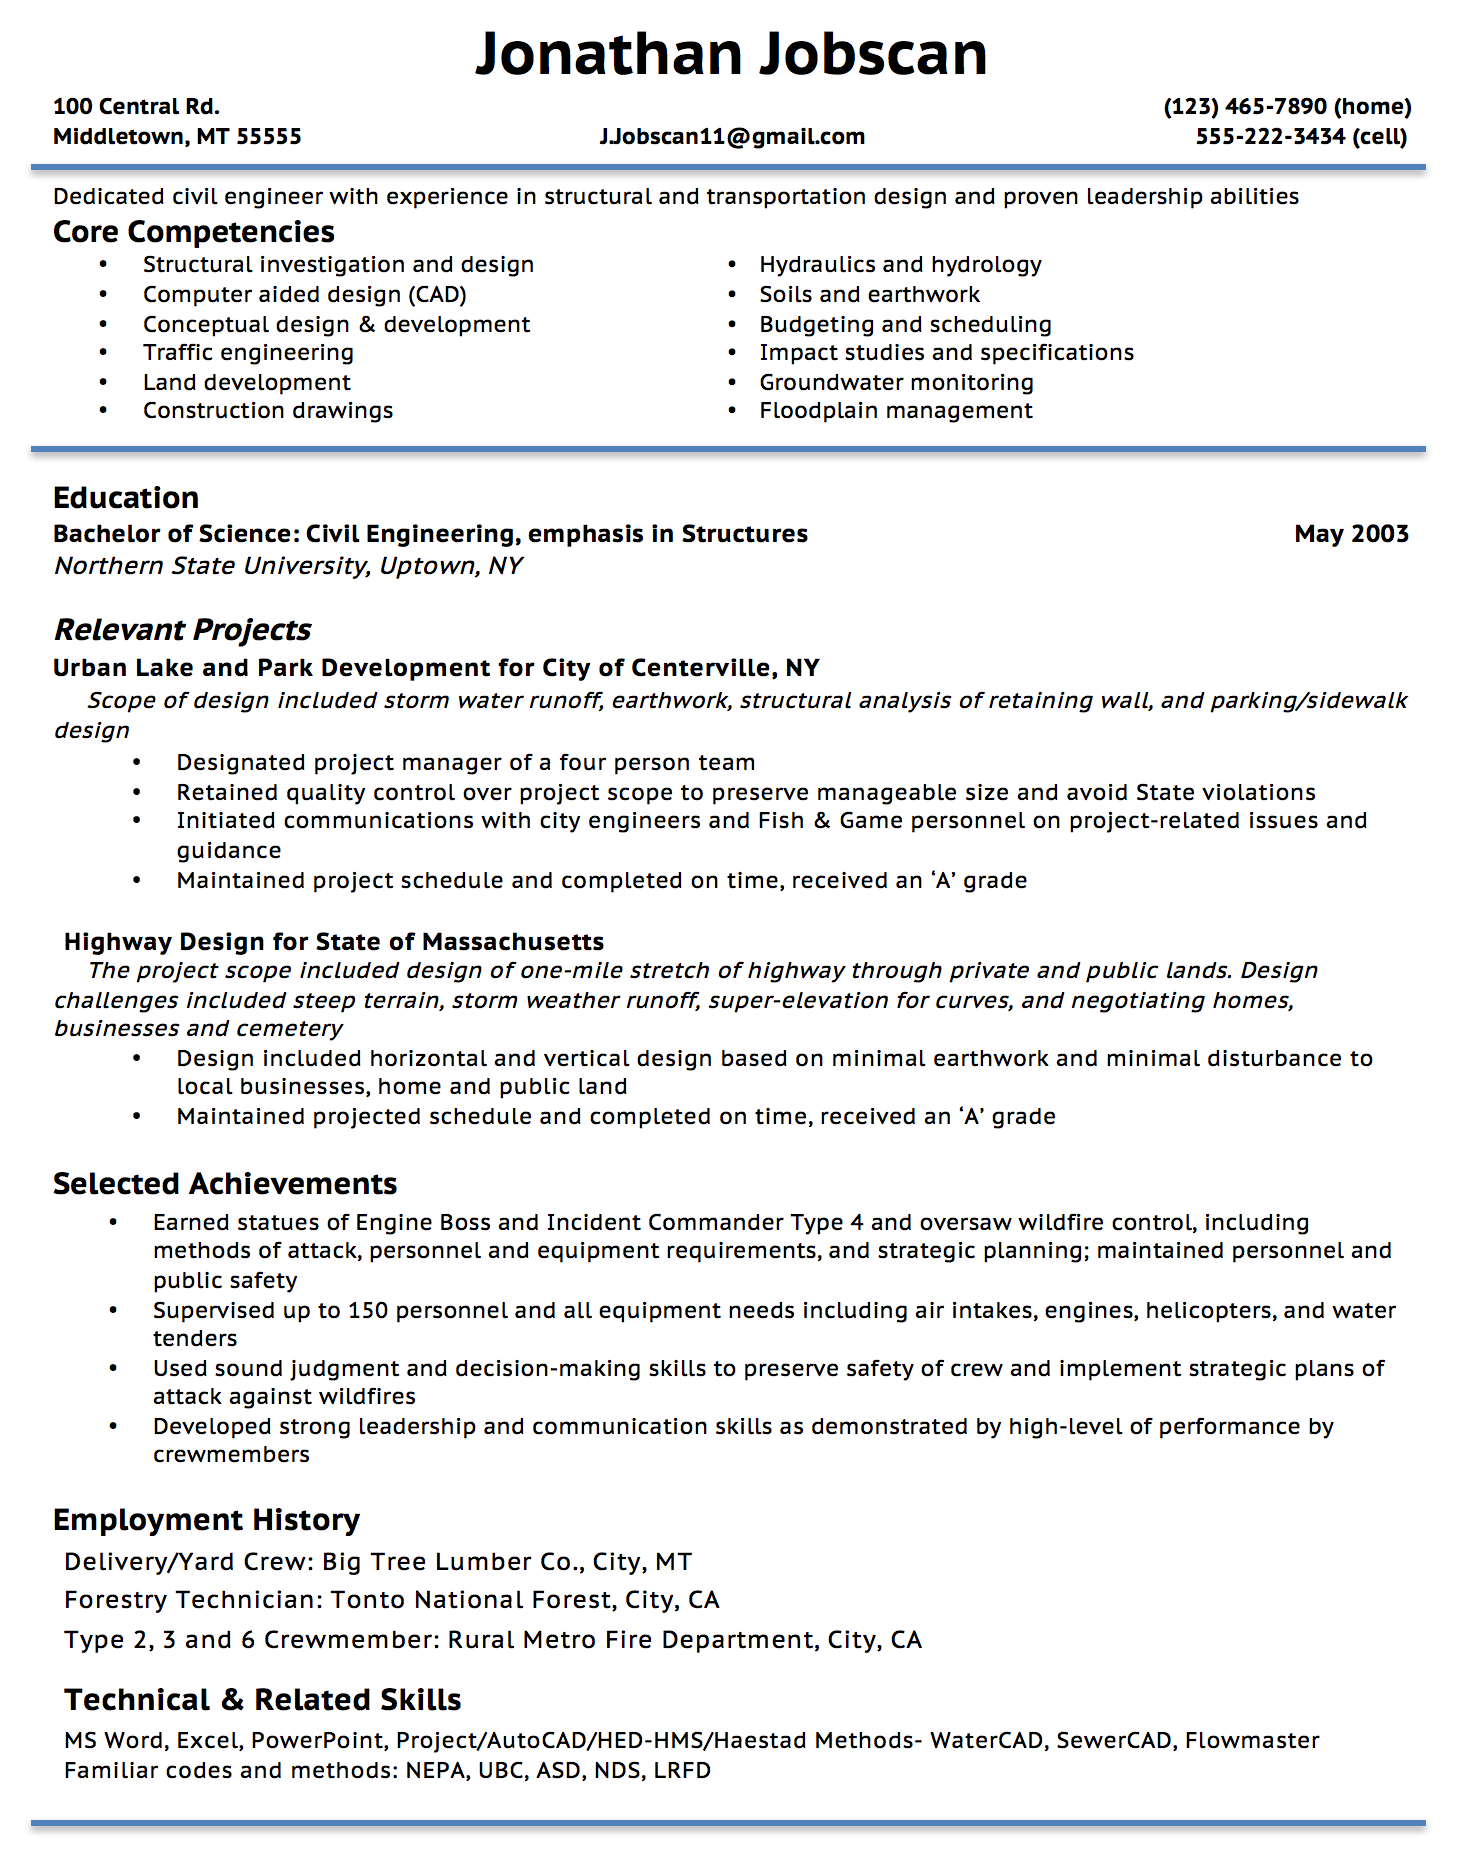 Opposenewapstandardsus  Wonderful Resume Writing Guide  Jobscan With Likable Example Of A Functional Resume Format With Attractive Administrative Assistant Sample Resume Also Server Job Description For Resume In Addition Resume Website Template And References For A Resume As Well As Freelance Resume Additionally Examples Of Nursing Resumes From Jobscanco With Opposenewapstandardsus  Likable Resume Writing Guide  Jobscan With Attractive Example Of A Functional Resume Format And Wonderful Administrative Assistant Sample Resume Also Server Job Description For Resume In Addition Resume Website Template From Jobscanco